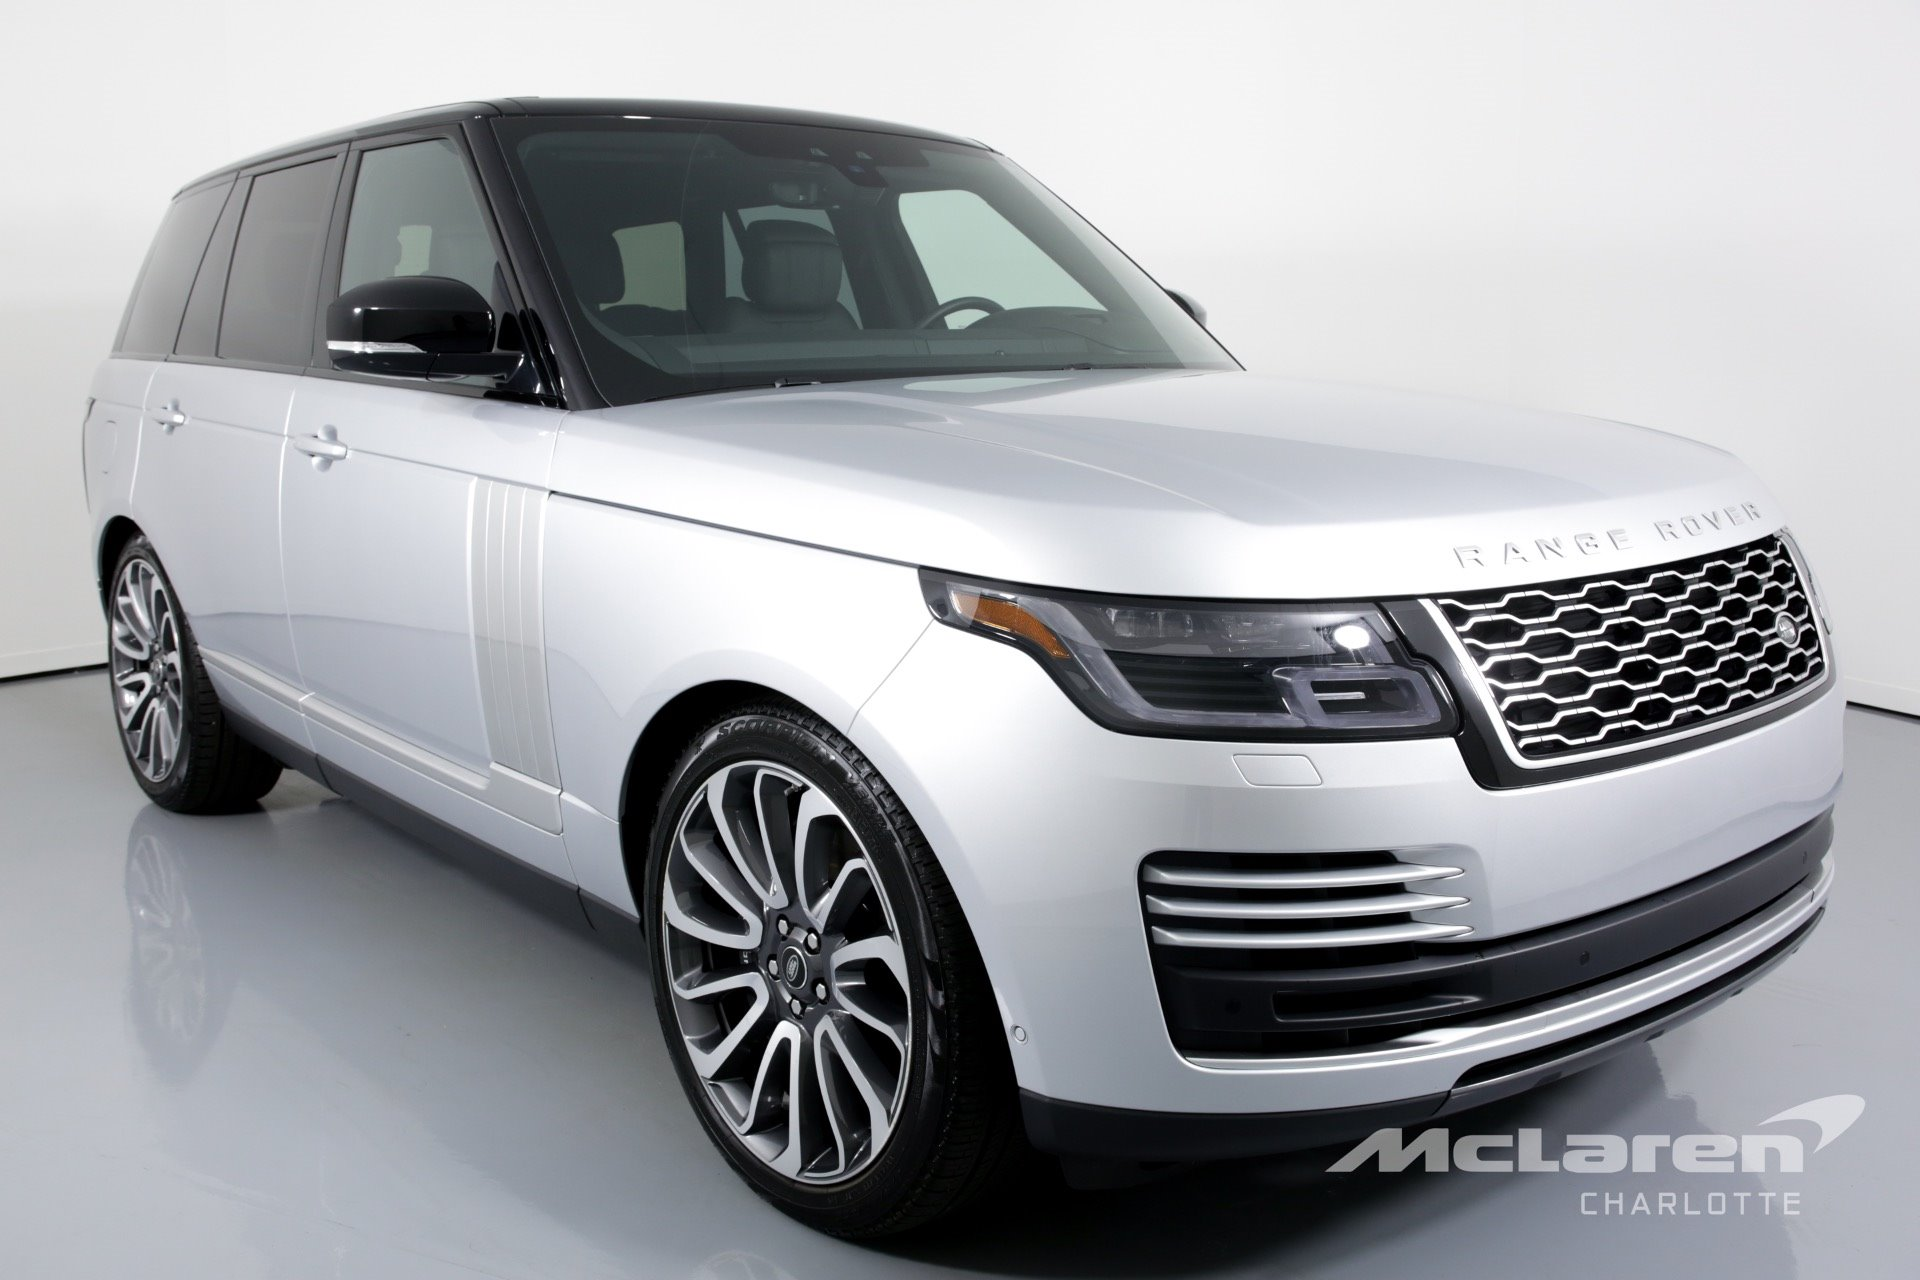 New 2019 Land Rover-Range Rover Base Range Rover for sale $89,500 at M and V Leasing in Brooklyn NY 11223 1